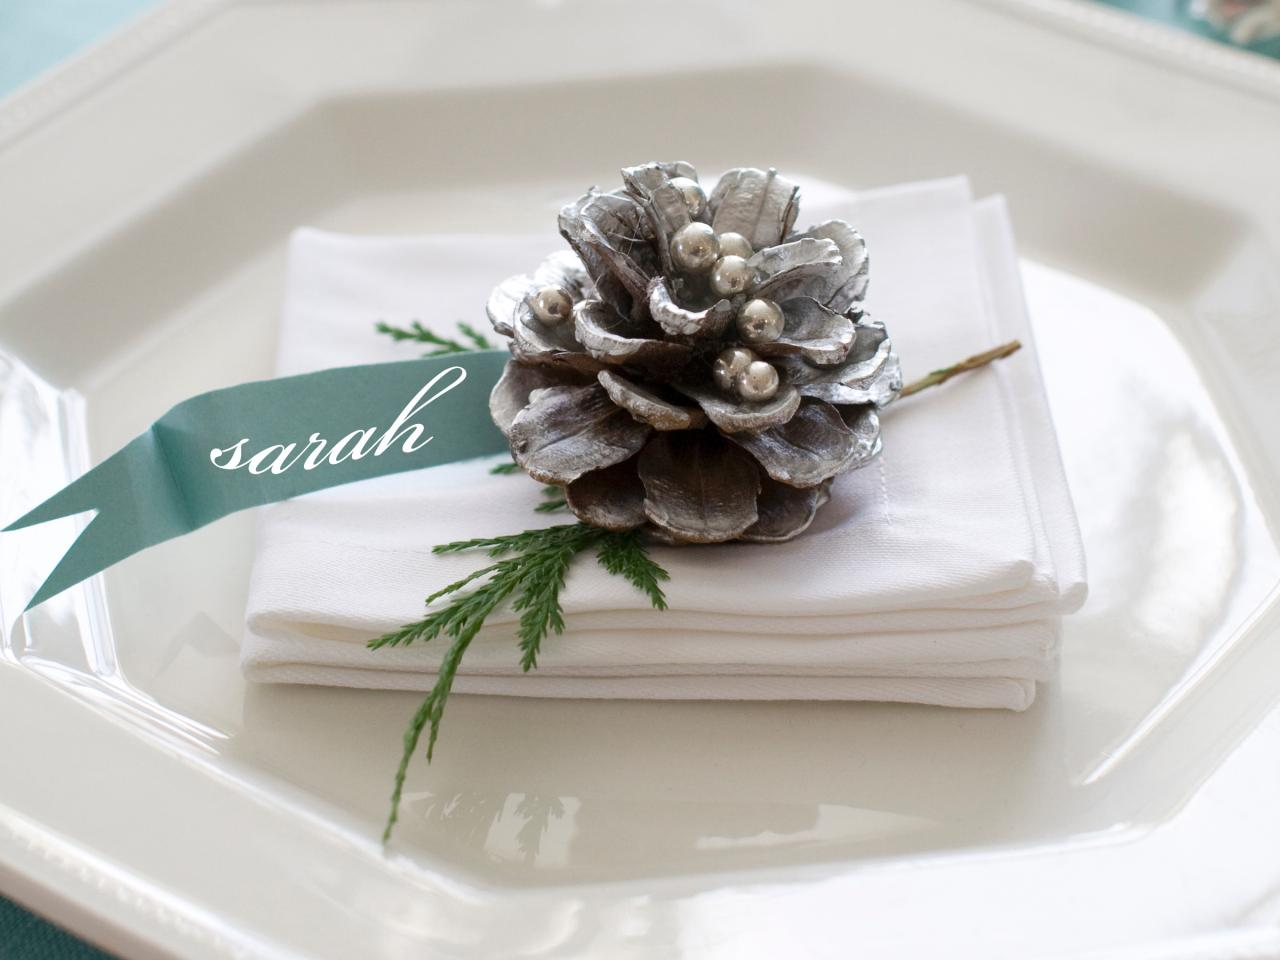 A place setting with napkin on a plate and then a silver pine cone on top